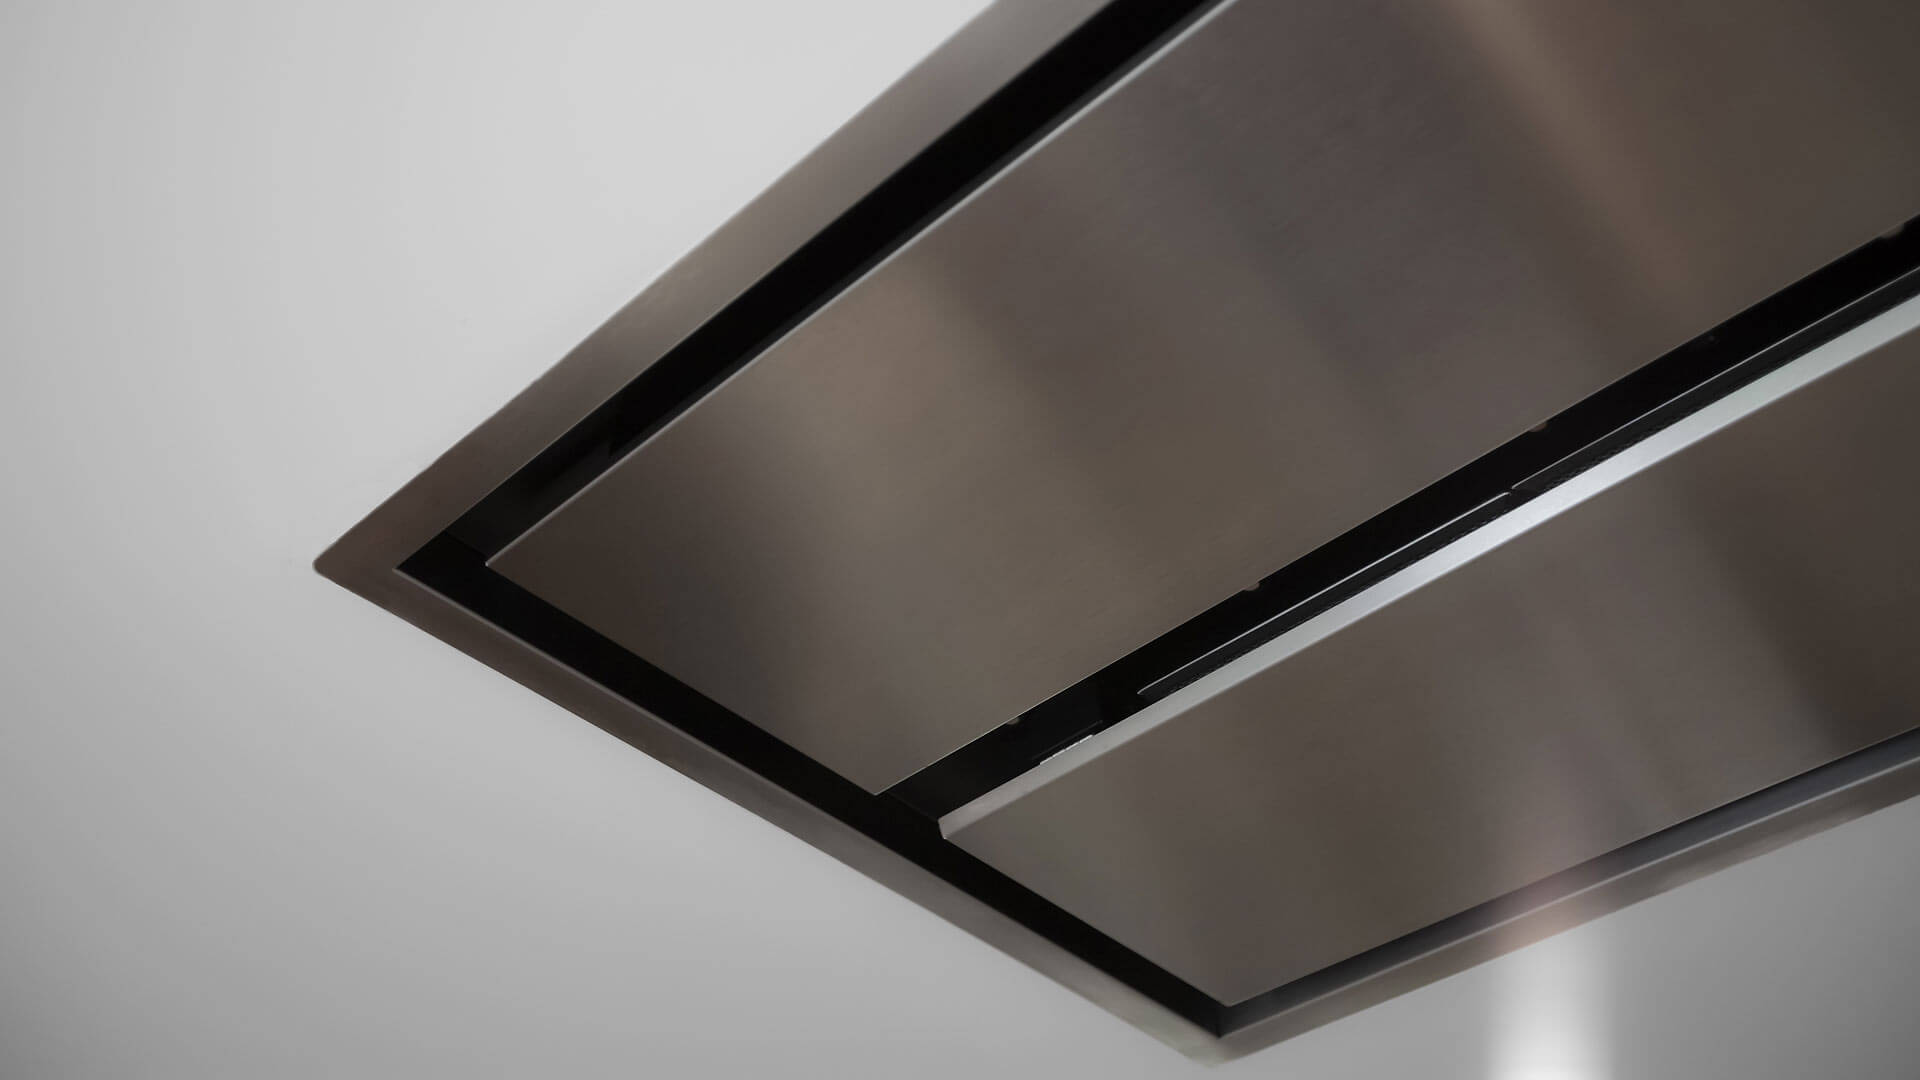 Kitchen range hood is direct-mounted to ceiling for a minimal look - Bridge House - Fenneville, Michigan - Lake Michigan